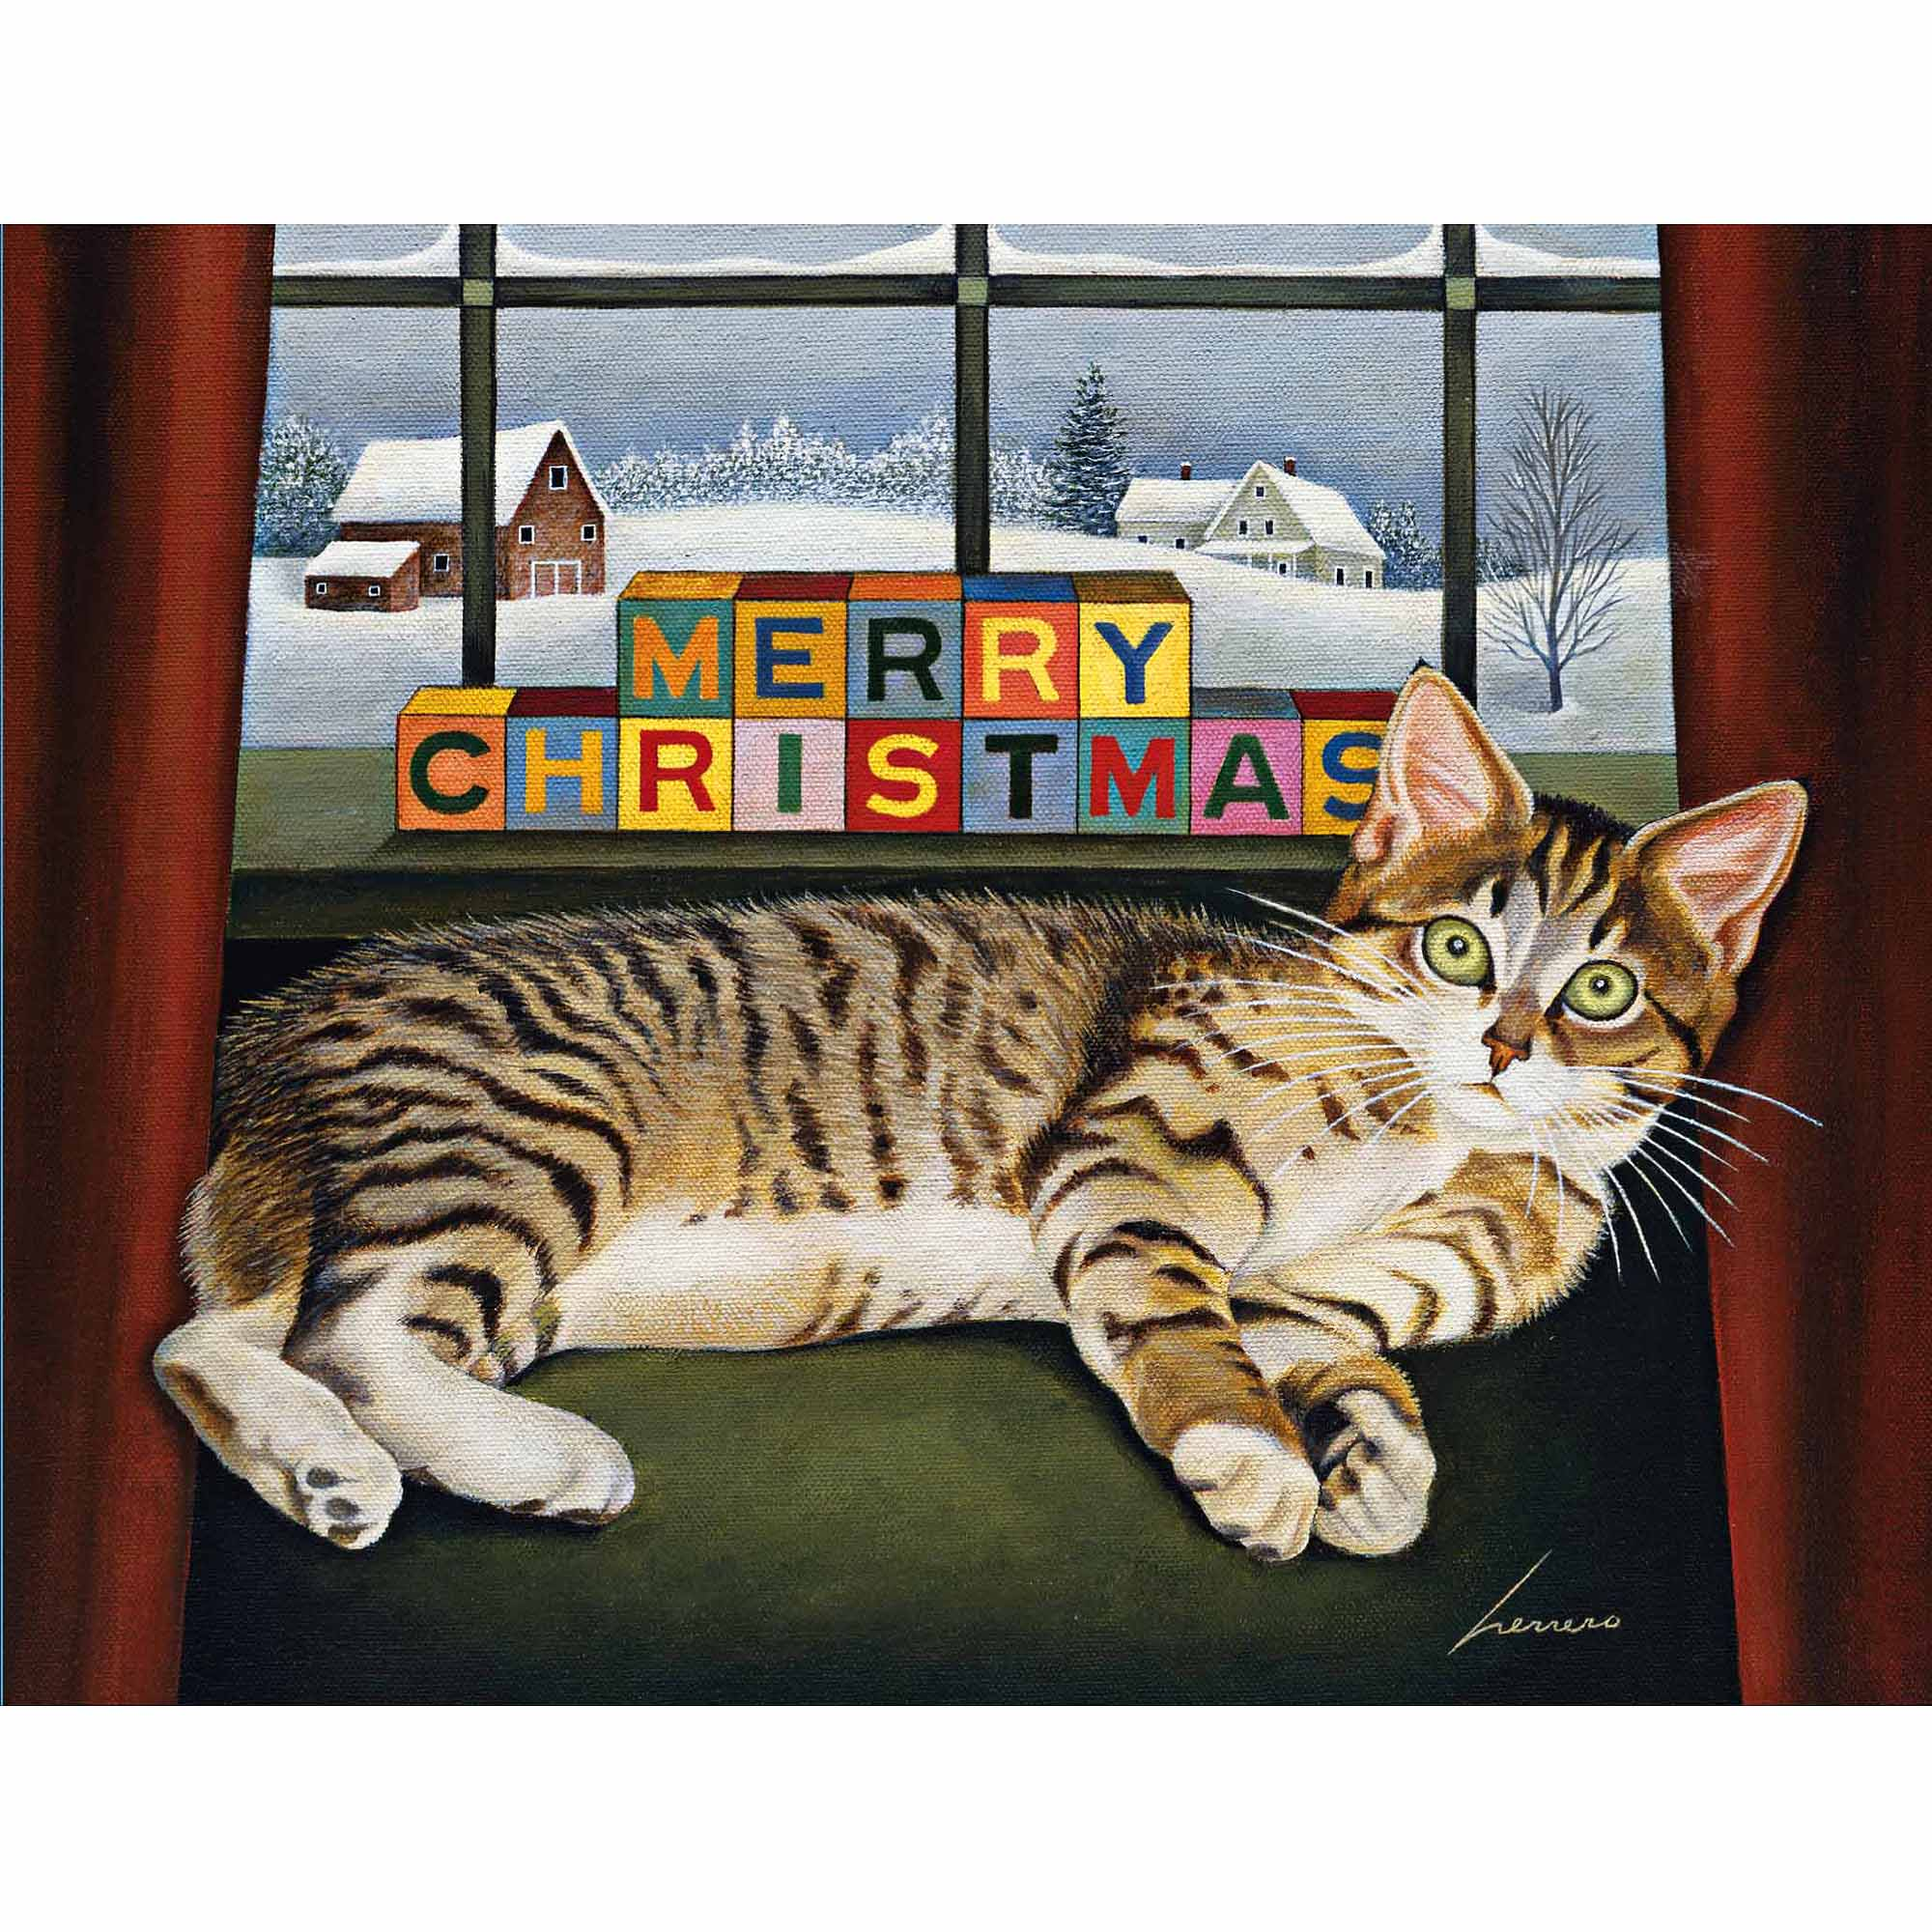 Lucy Mclain Boxed Christmas Card